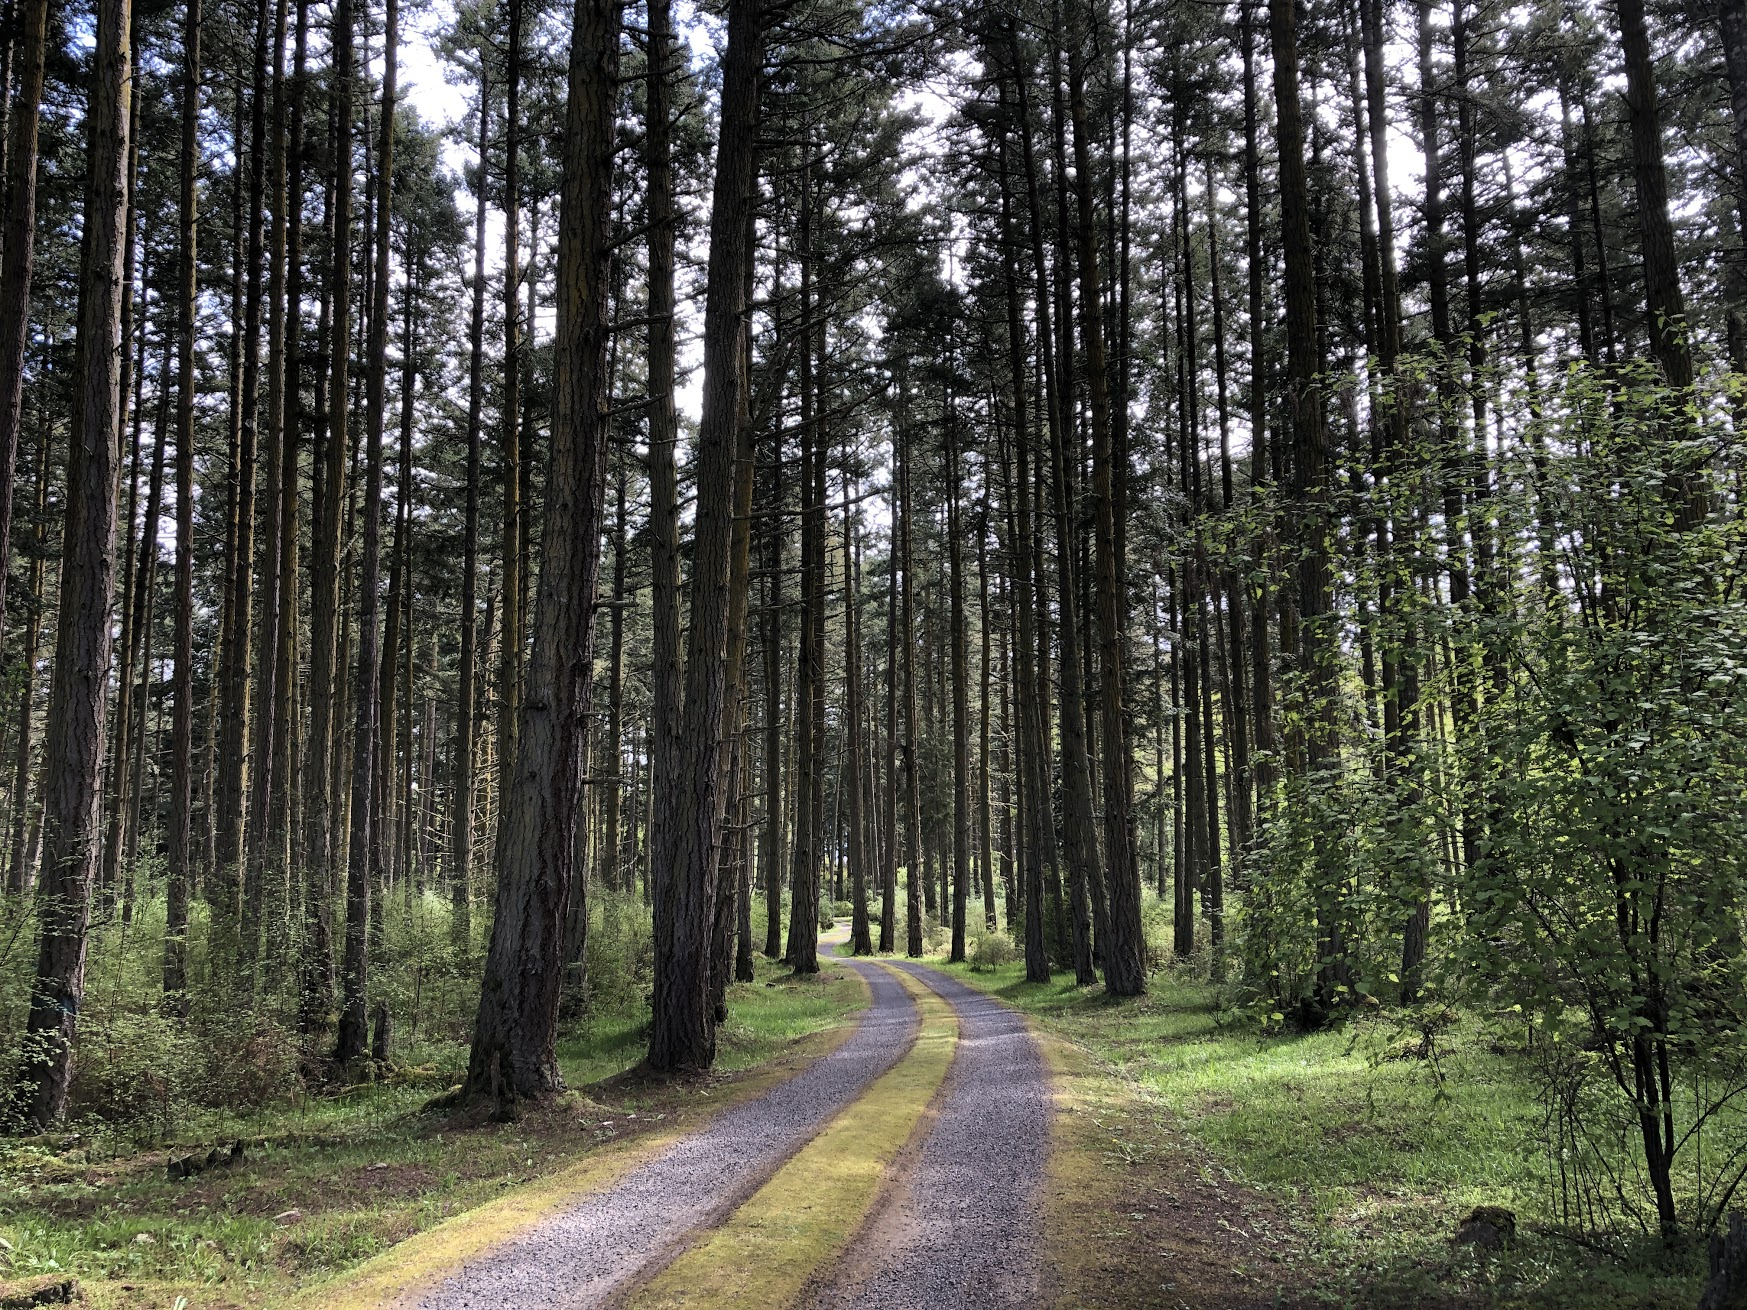 Image of a road through a forest of Douglas-fir